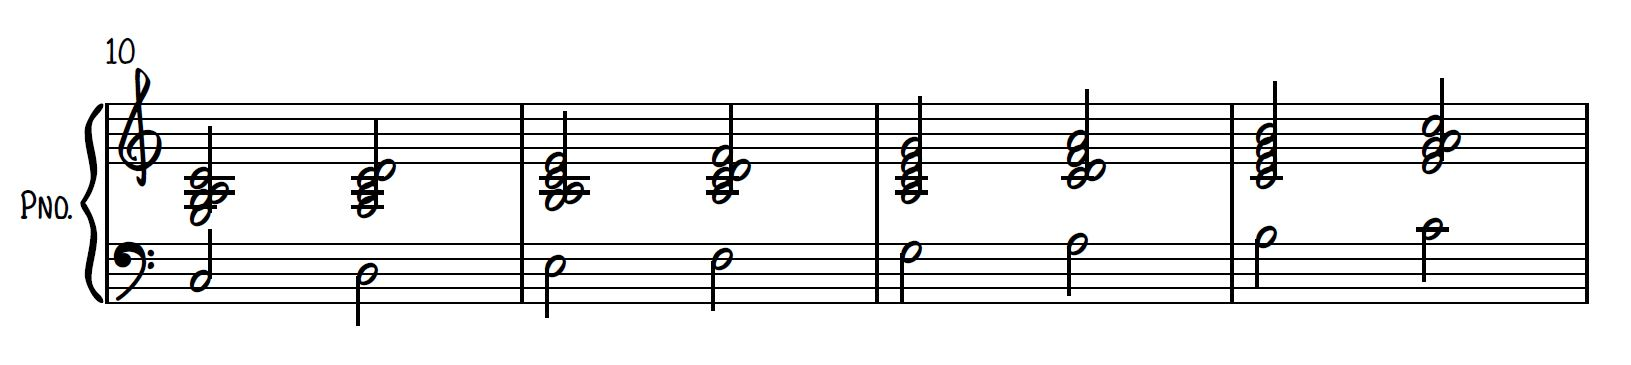 C Major scale with block chords